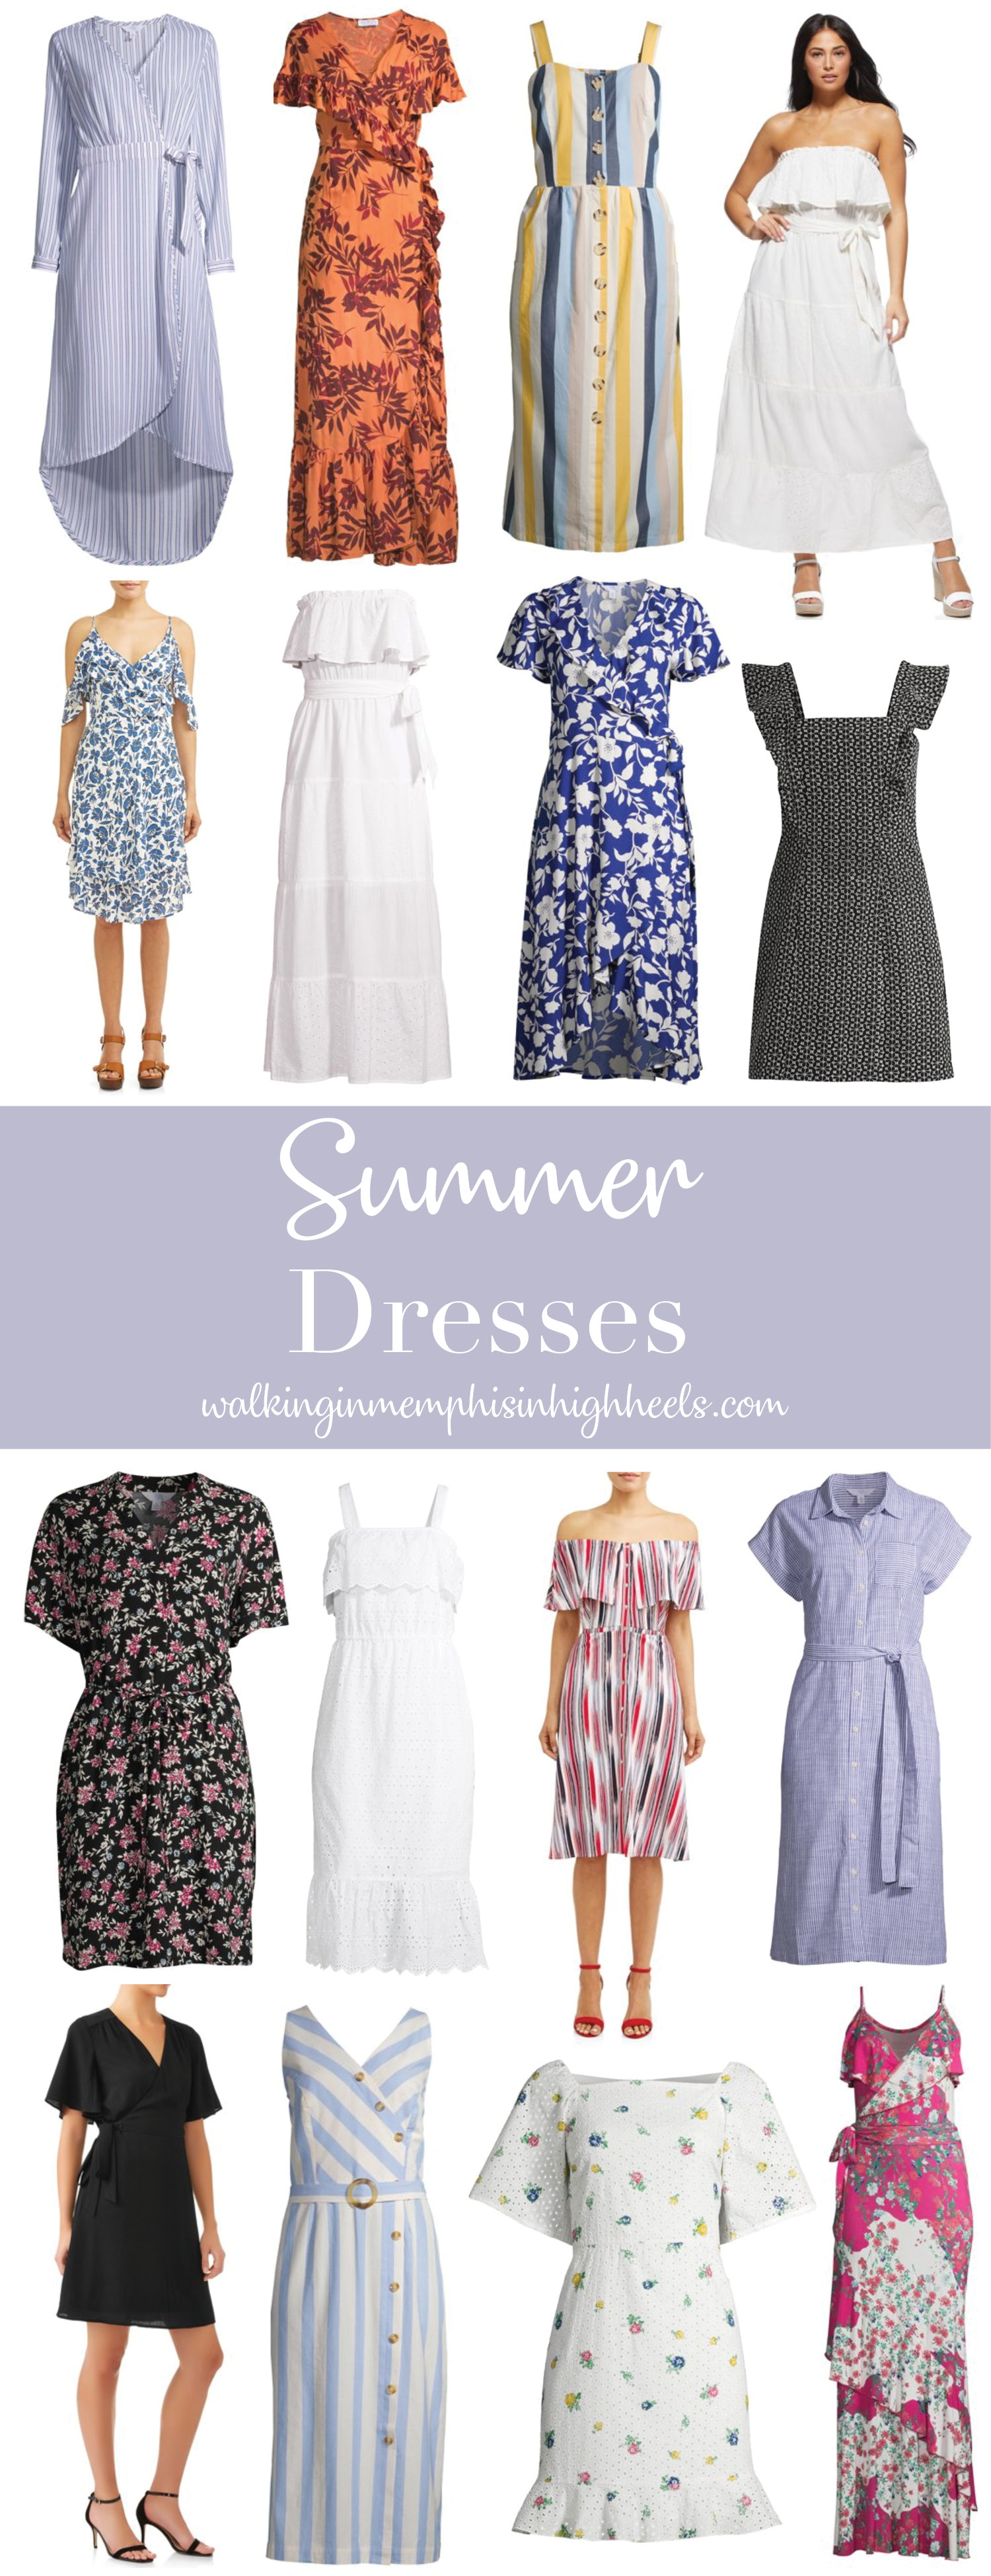 Top 15 Cute Summer Dresses Under $50 featured by top Memphis fashion blogger, Walking in Memphis in High Heels.